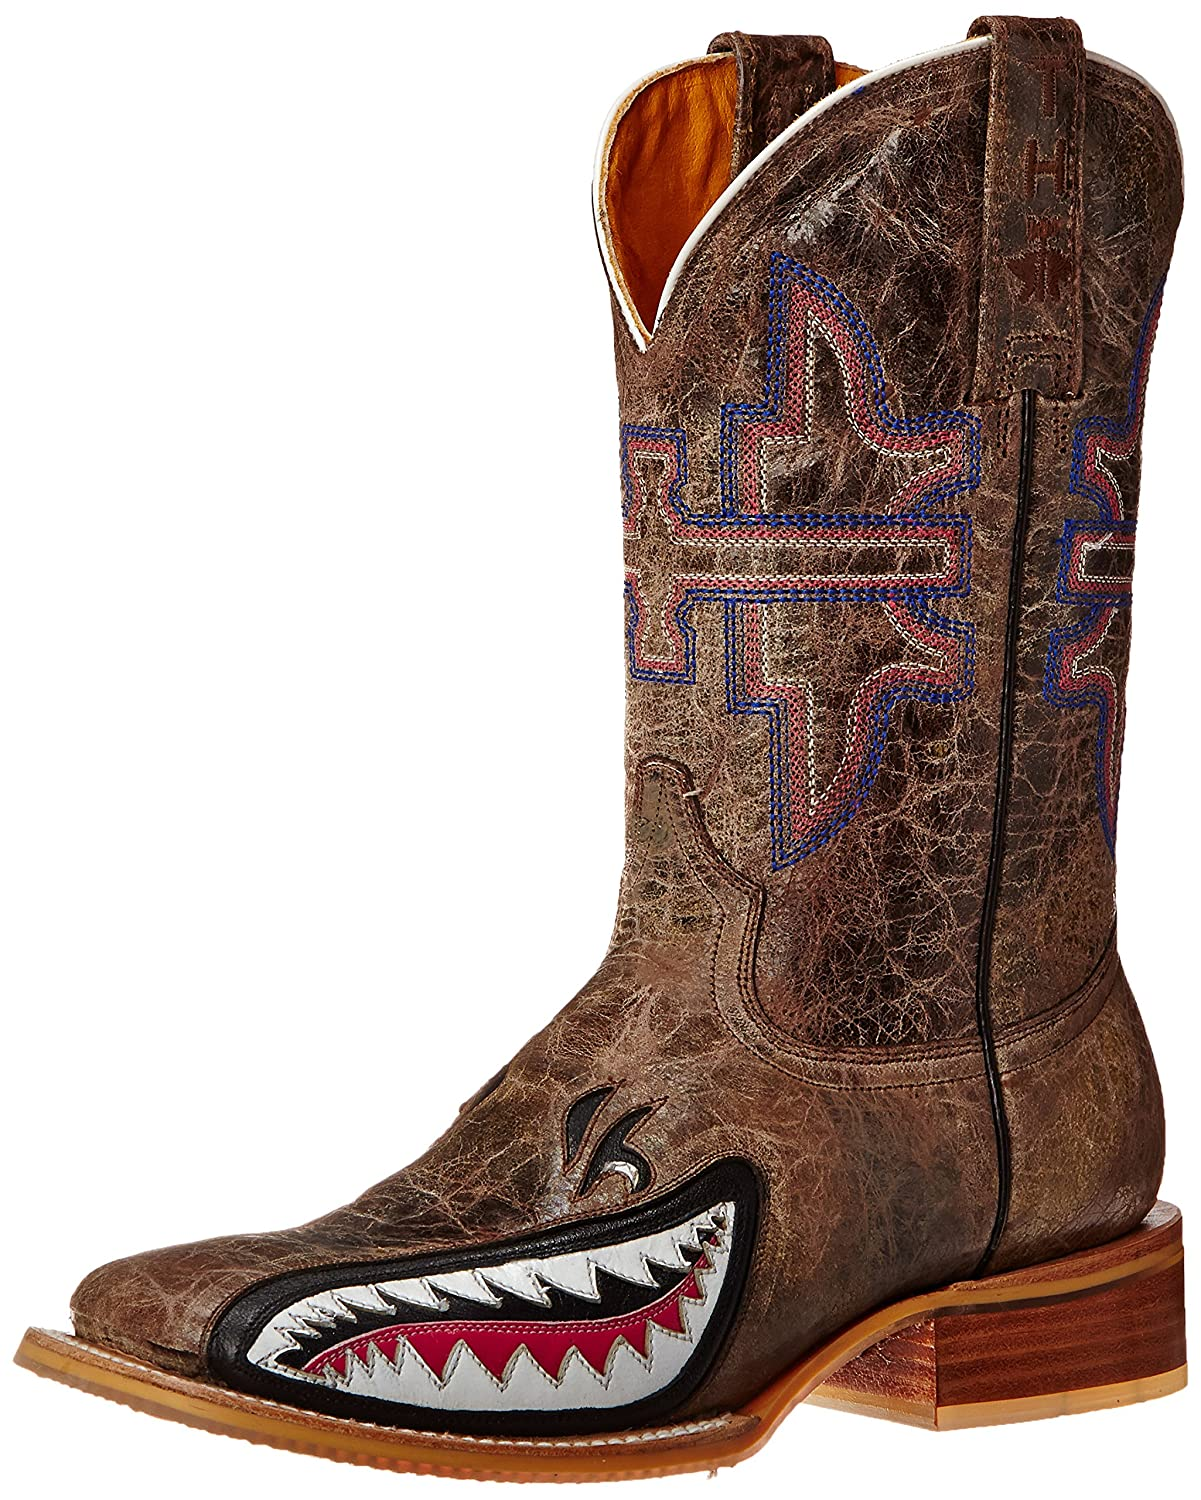 Tin Haul Shoes Women's Man Eater Western Boot B0084C55FG 6.5 B(M) US|Brown Crackle